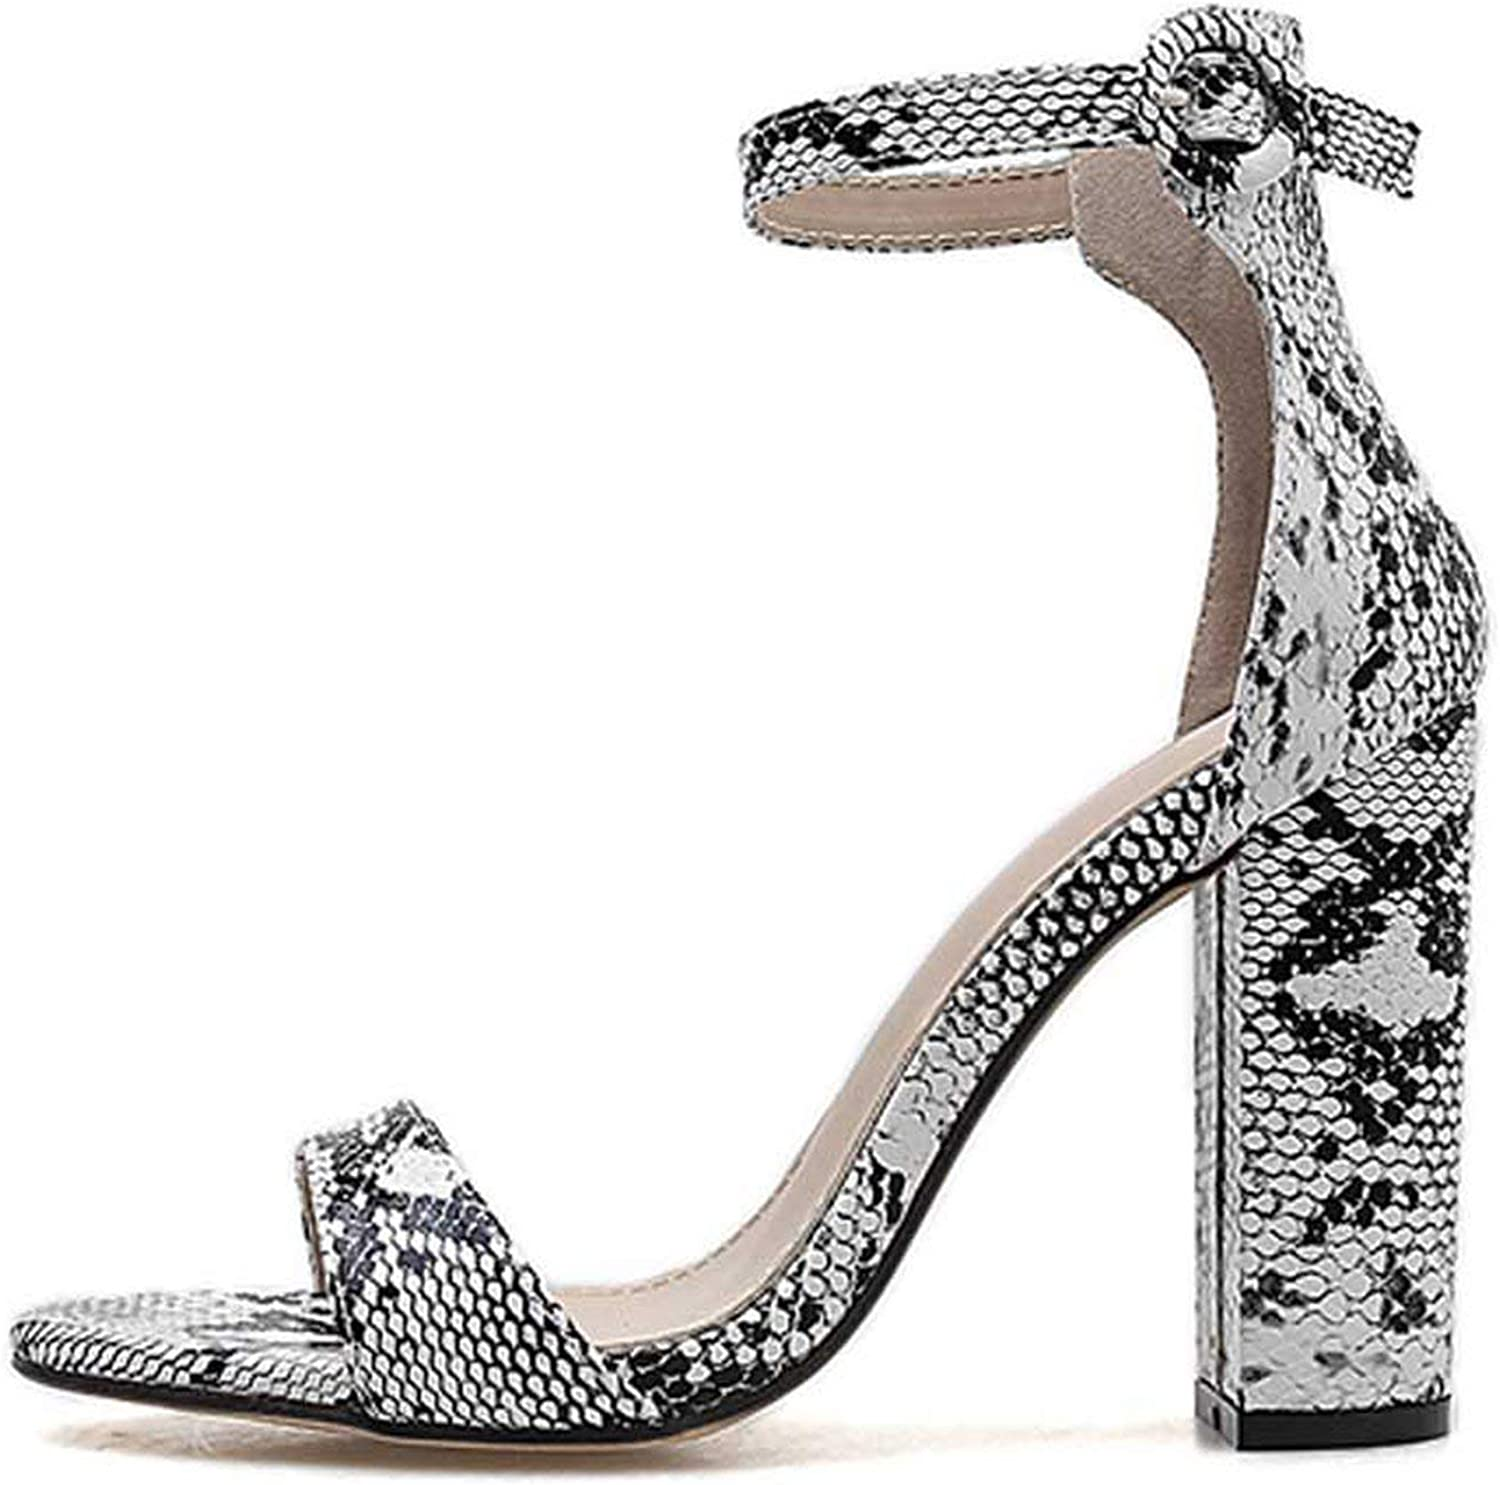 HANBINGPO Women Ankle Strap Sandals Snake Print Square Heel Fashion Pointed Toe Ladies Fashion shoes New Women Sandals